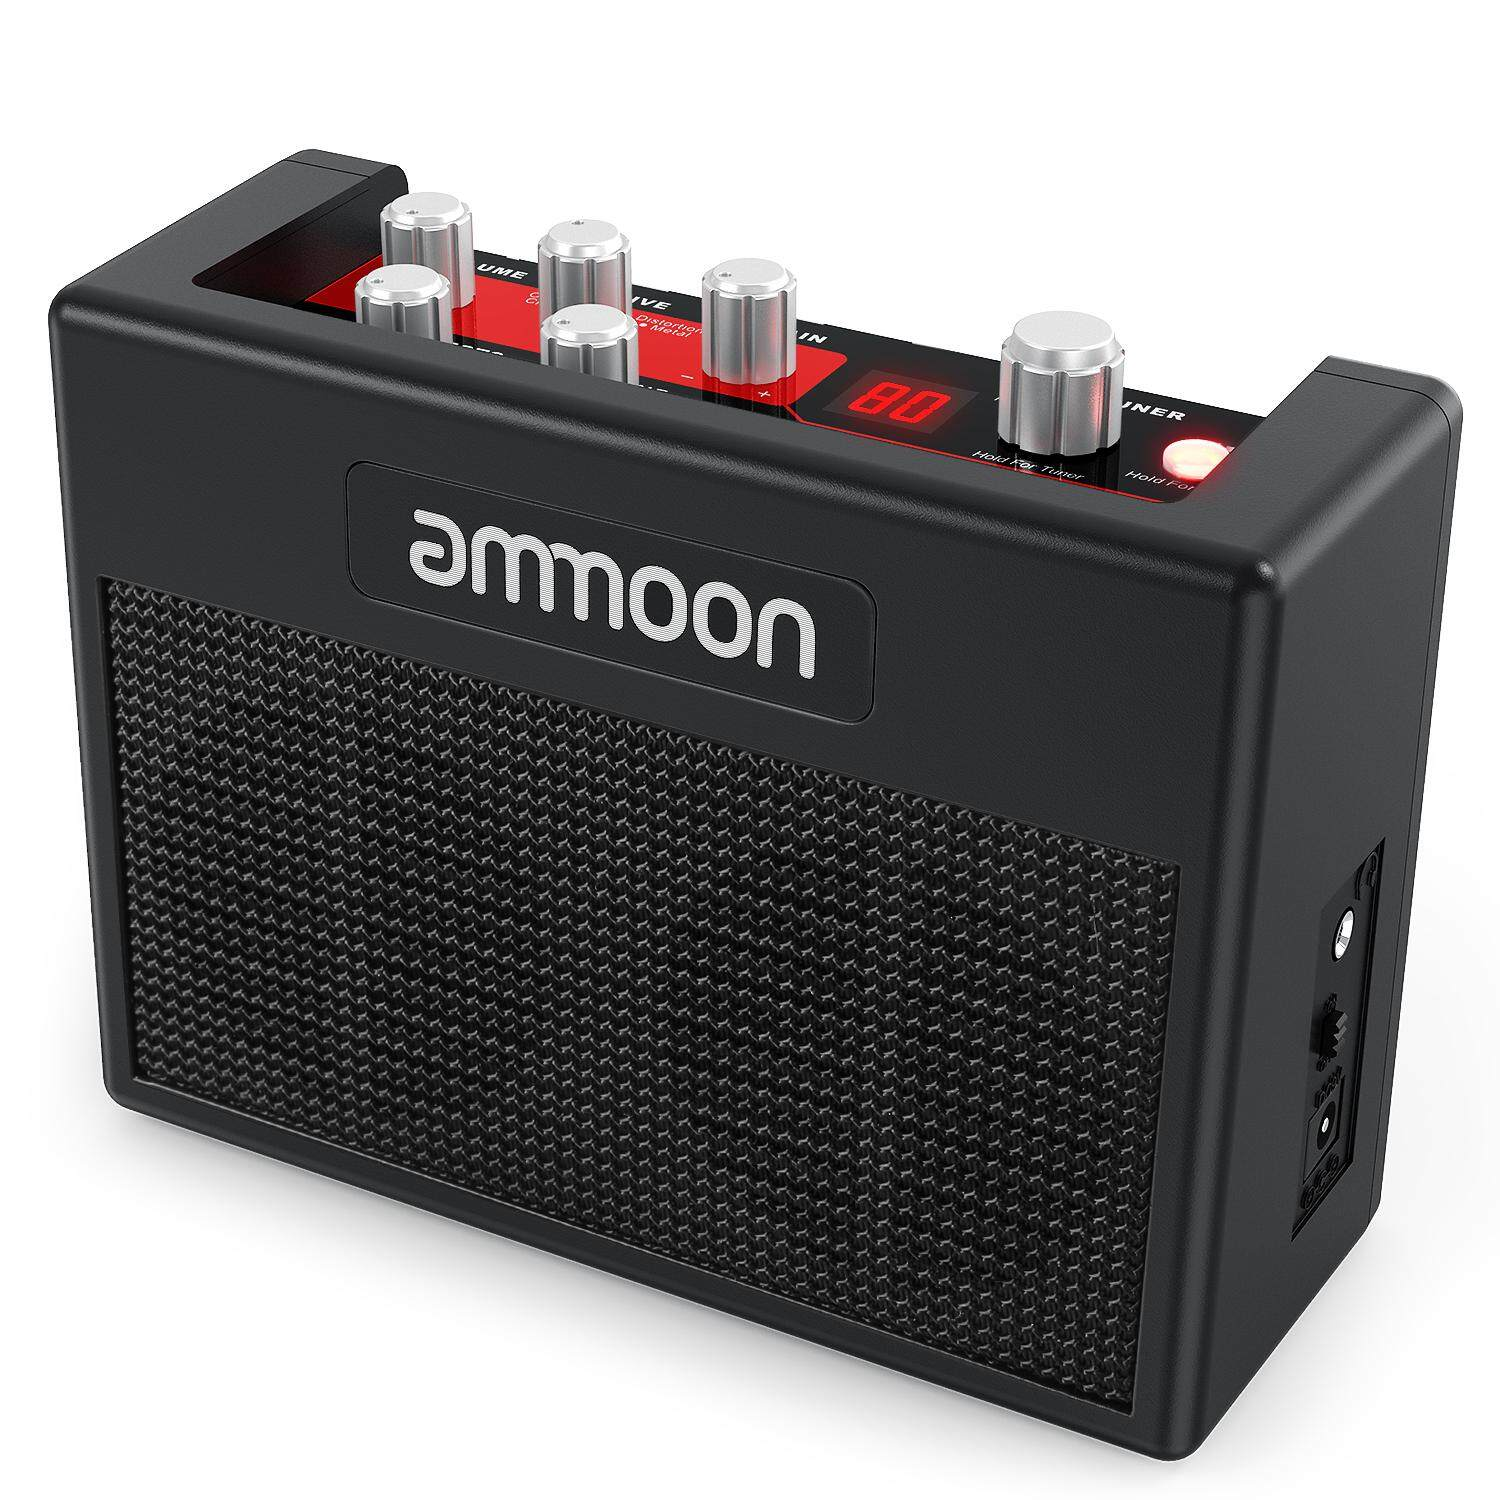 ammoon POCKAMP Portable Guitar Amplifier Amp 5 Watt Built-in Multi-effects 80 Drum Rhythms Support Tuner Tap Tempo Functions with Aux Input Headphone Output, Power adapter included